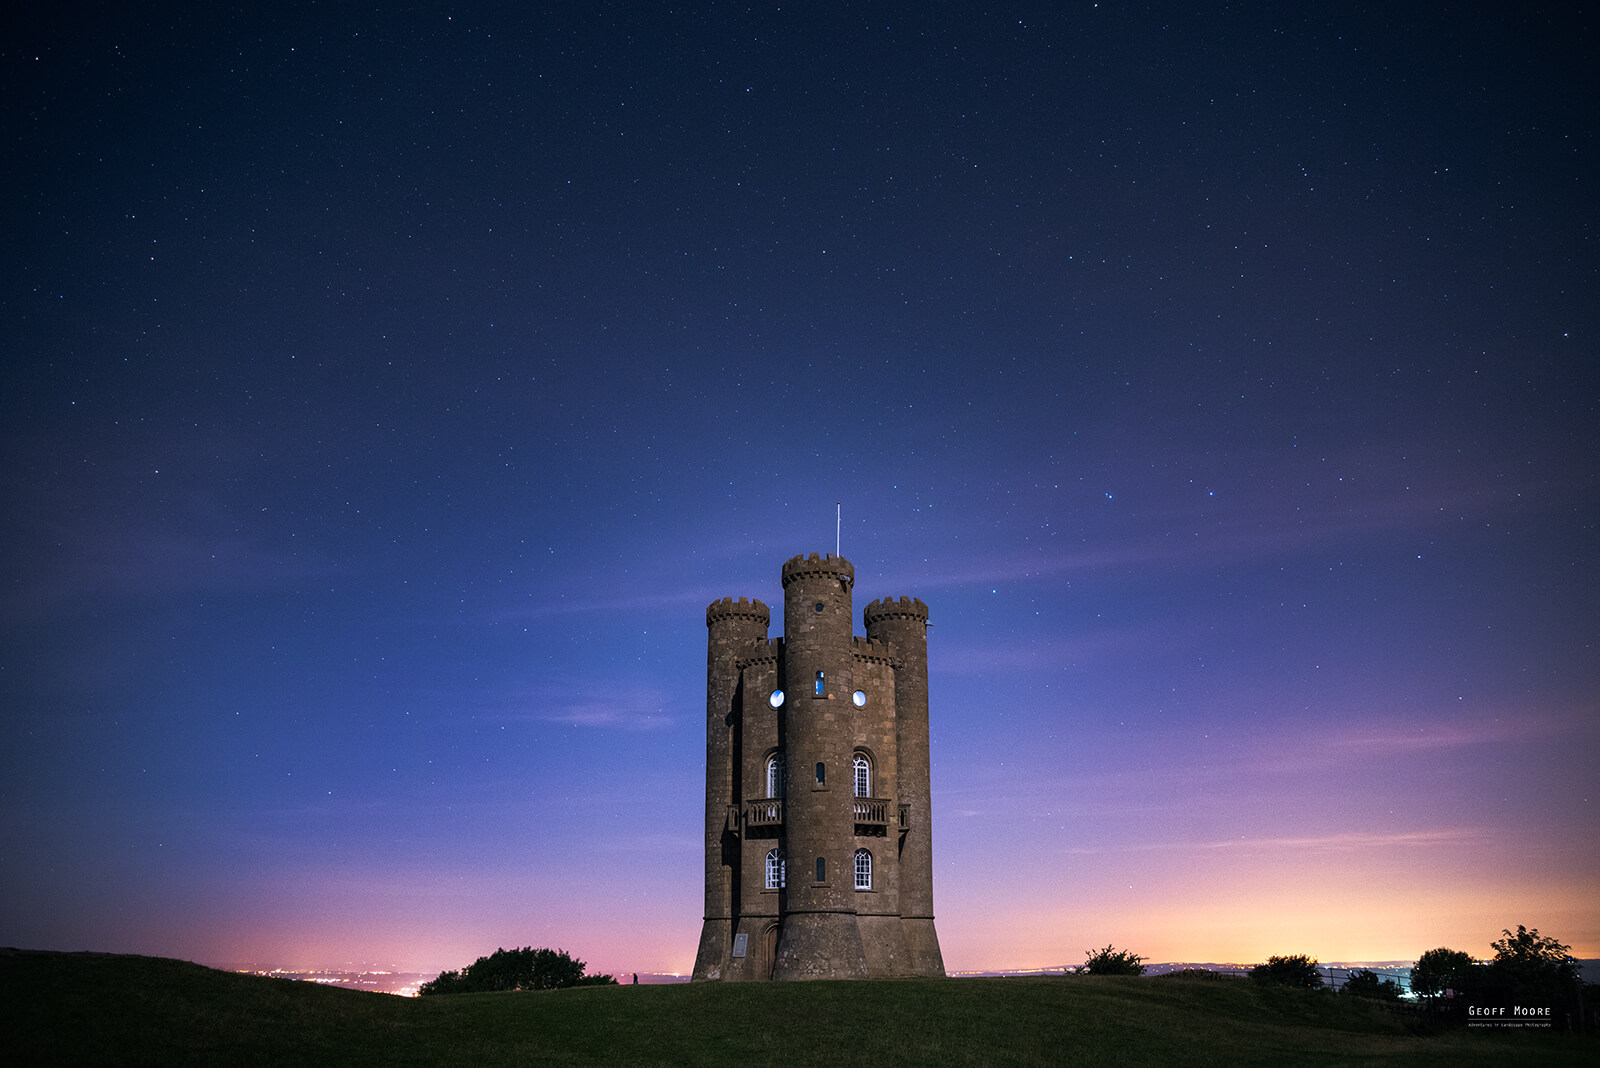 Broadway Tower & The Perseid Meteor Shower